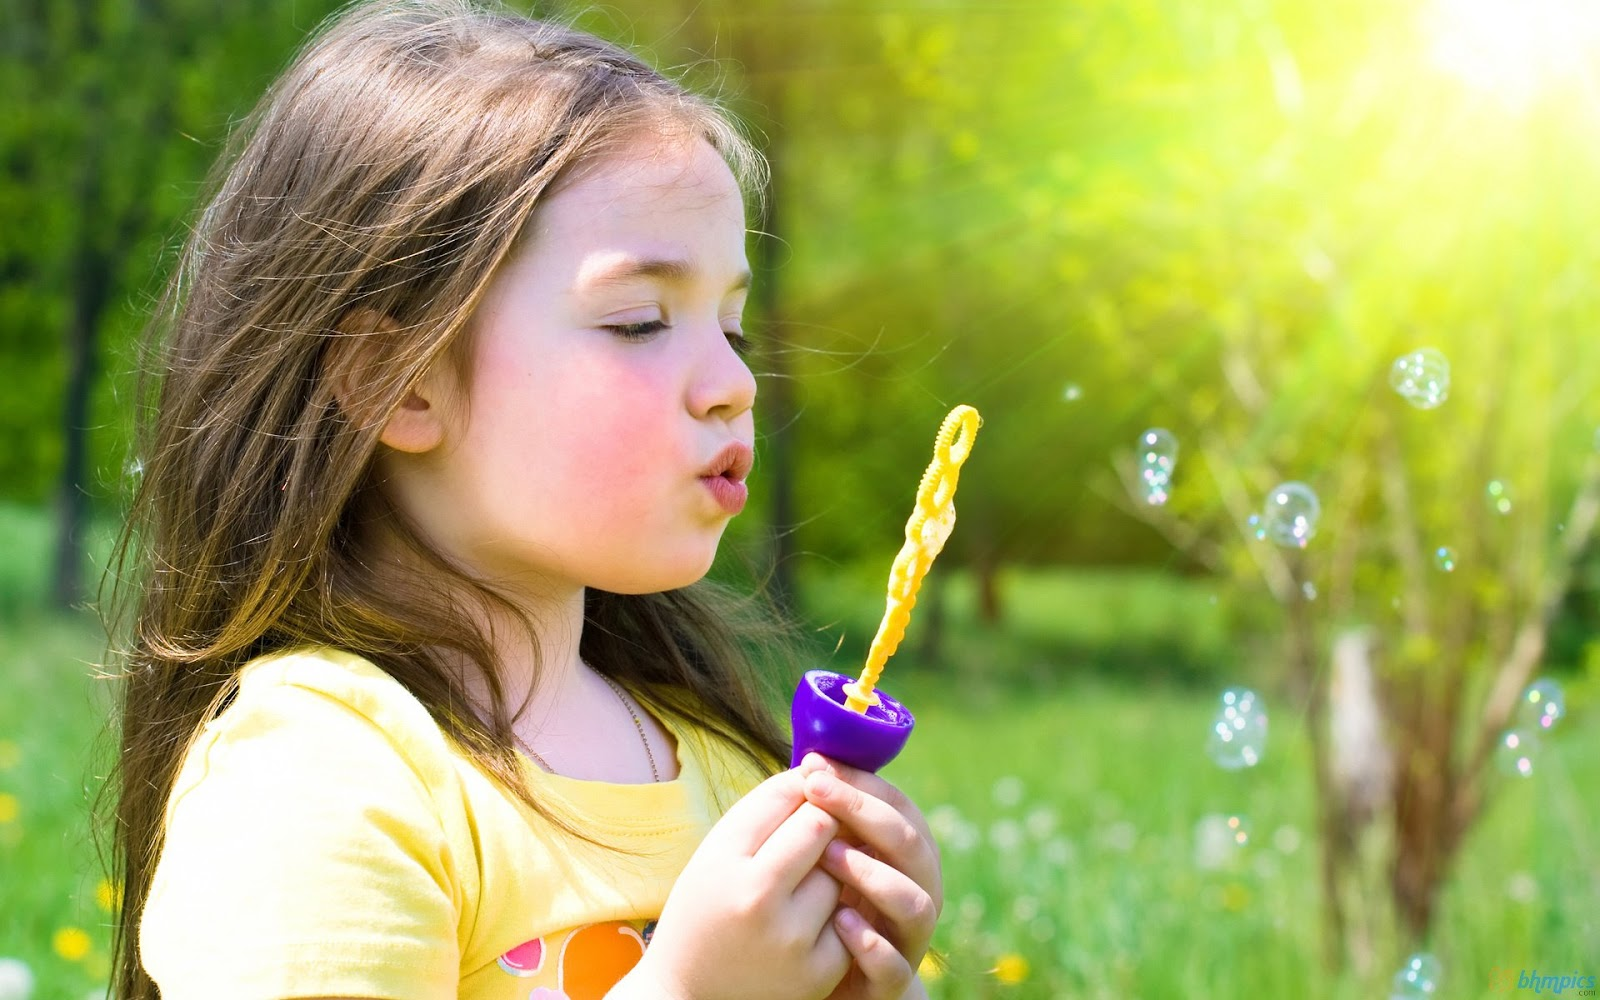 Cute Little Girl Playing Bubbles HD Wallpaper | Cute Little Babies Wallpaper